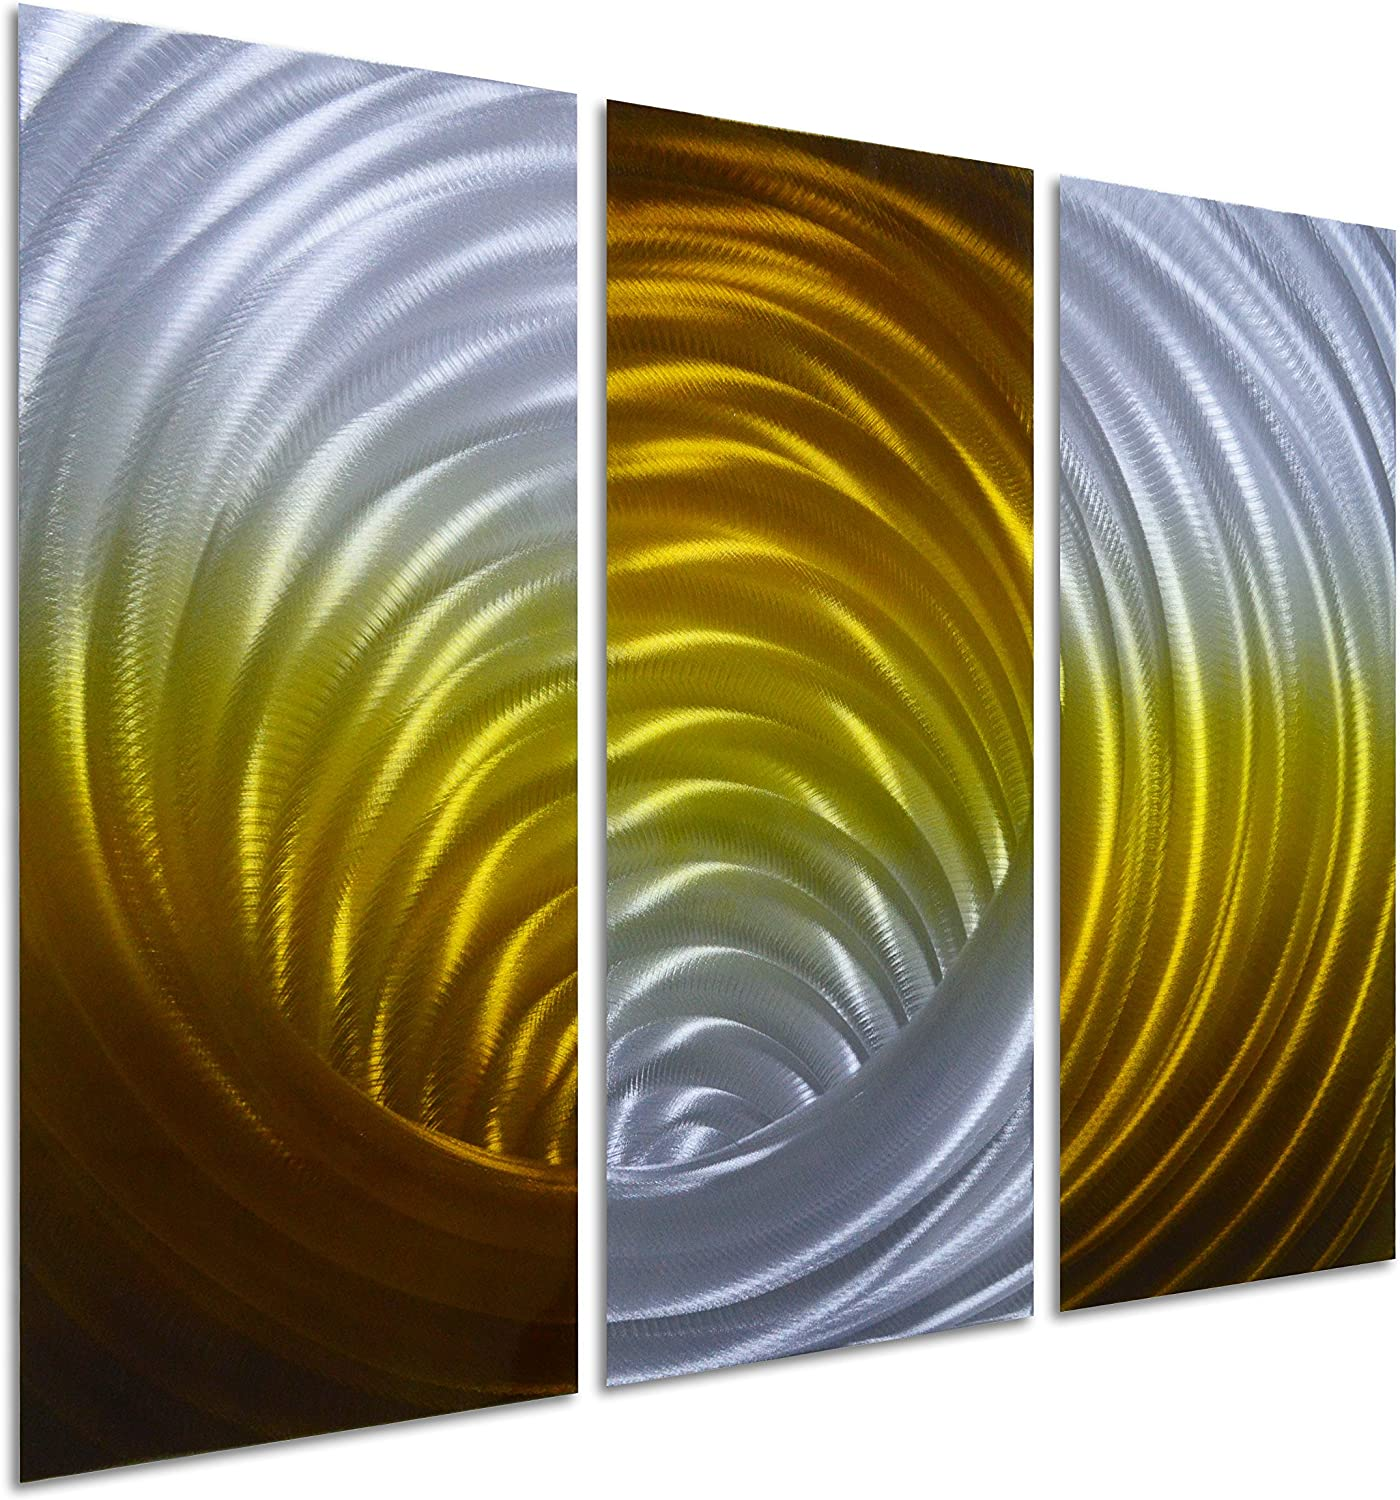 Pure Art Vortex in Gold - Abstract Metal Wall Art Painting - Modern Hanging Decor of 3-Panel - Small Design Decoration of 32